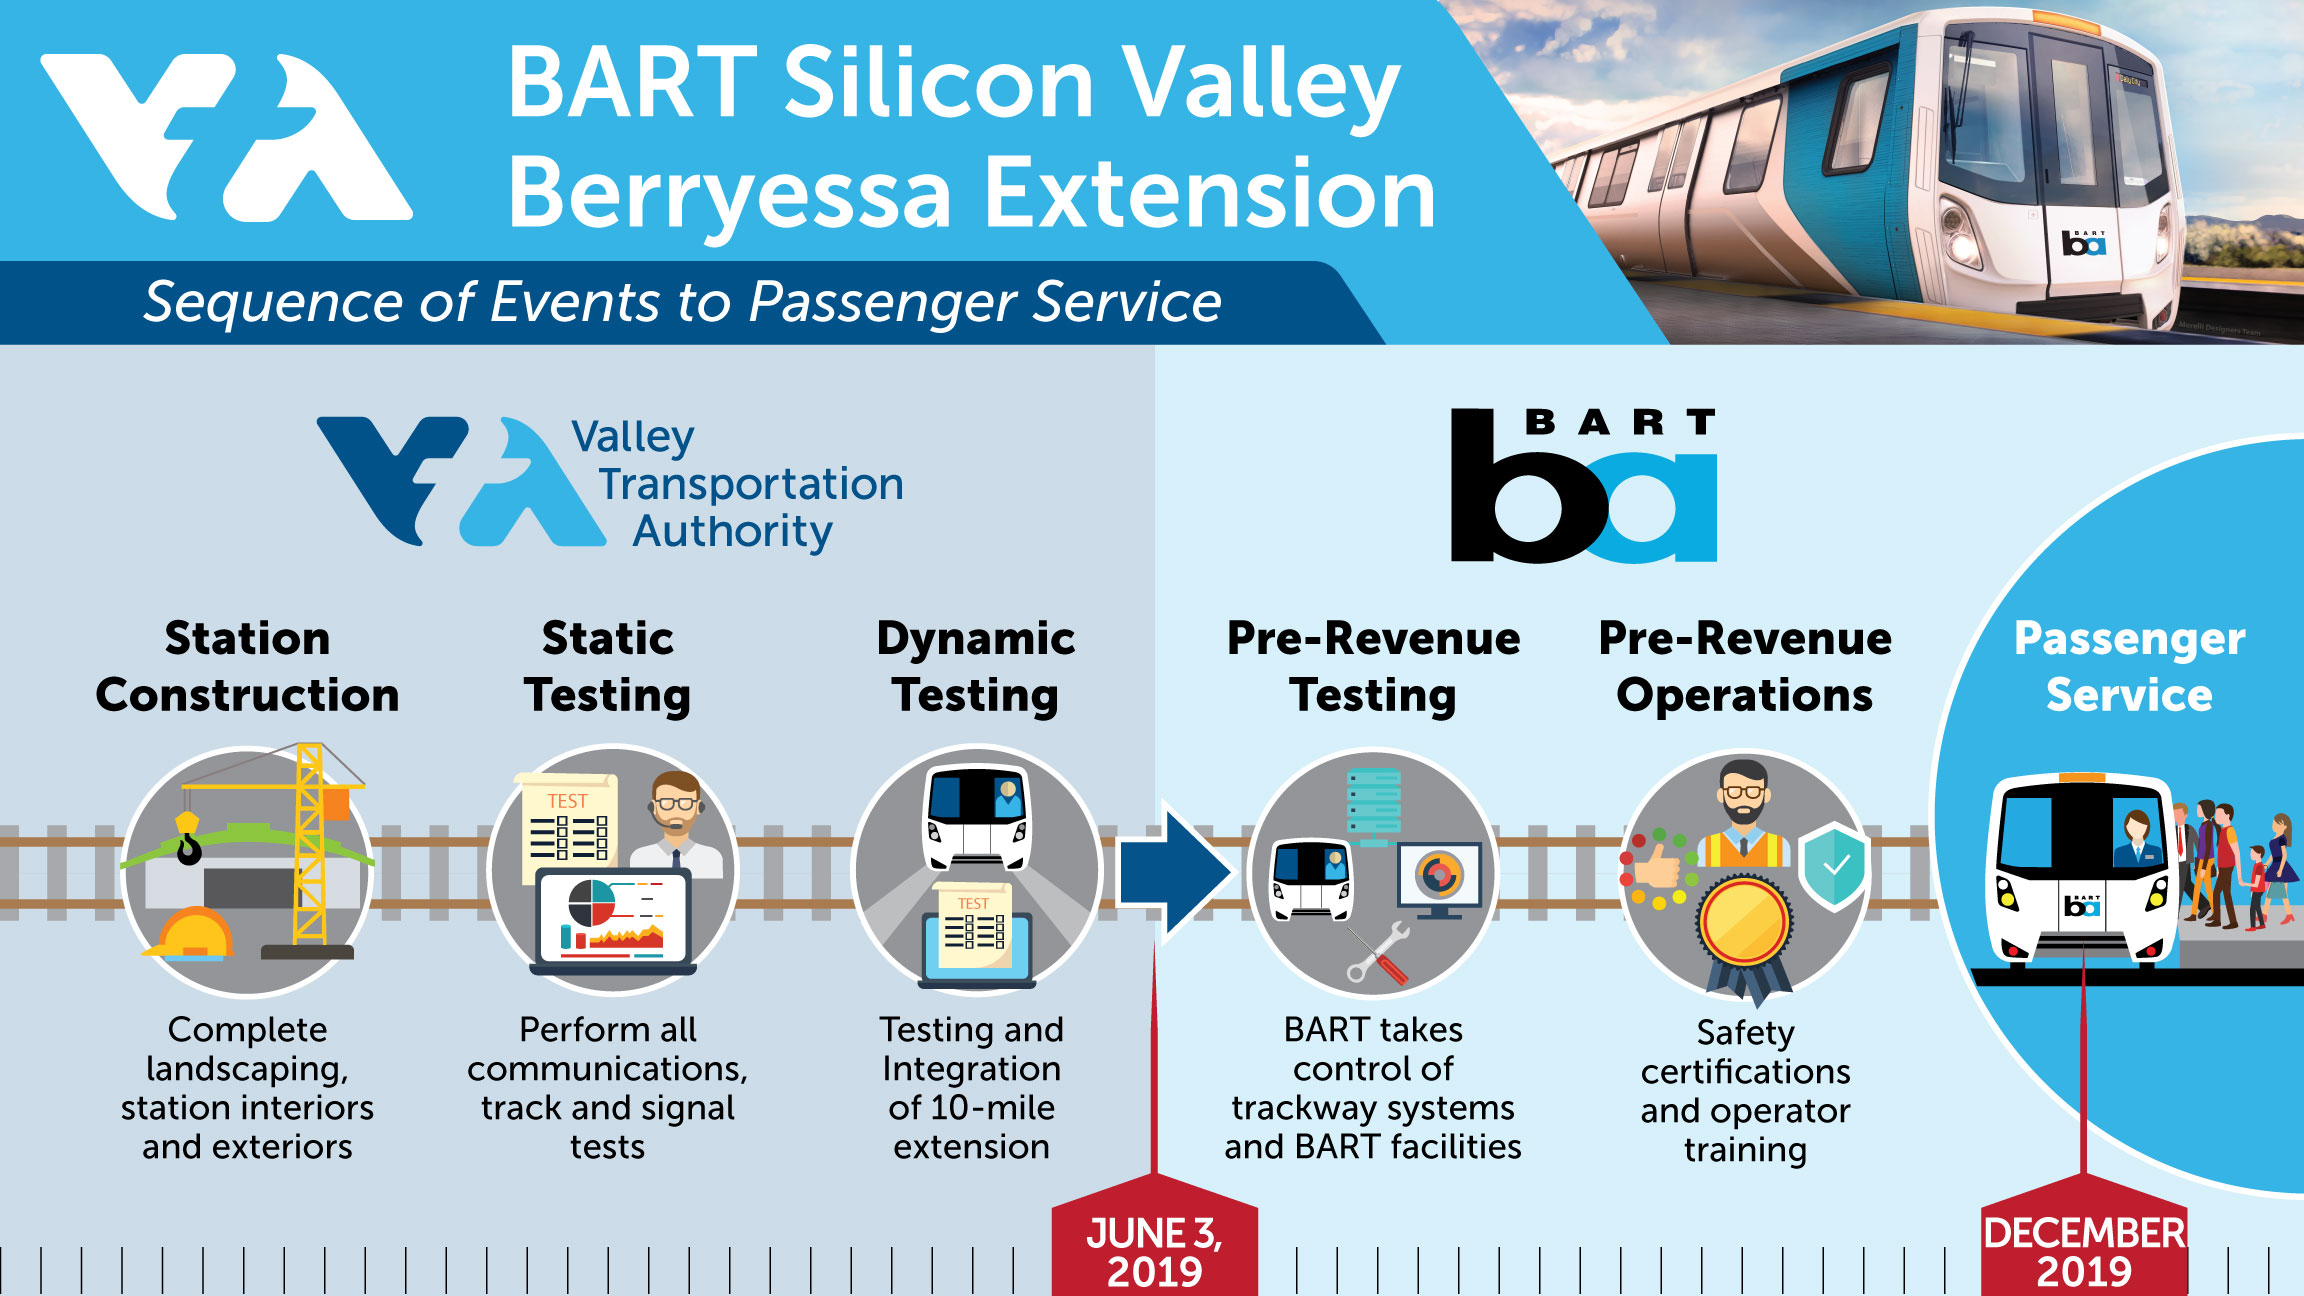 BART Silicon Valley timeline